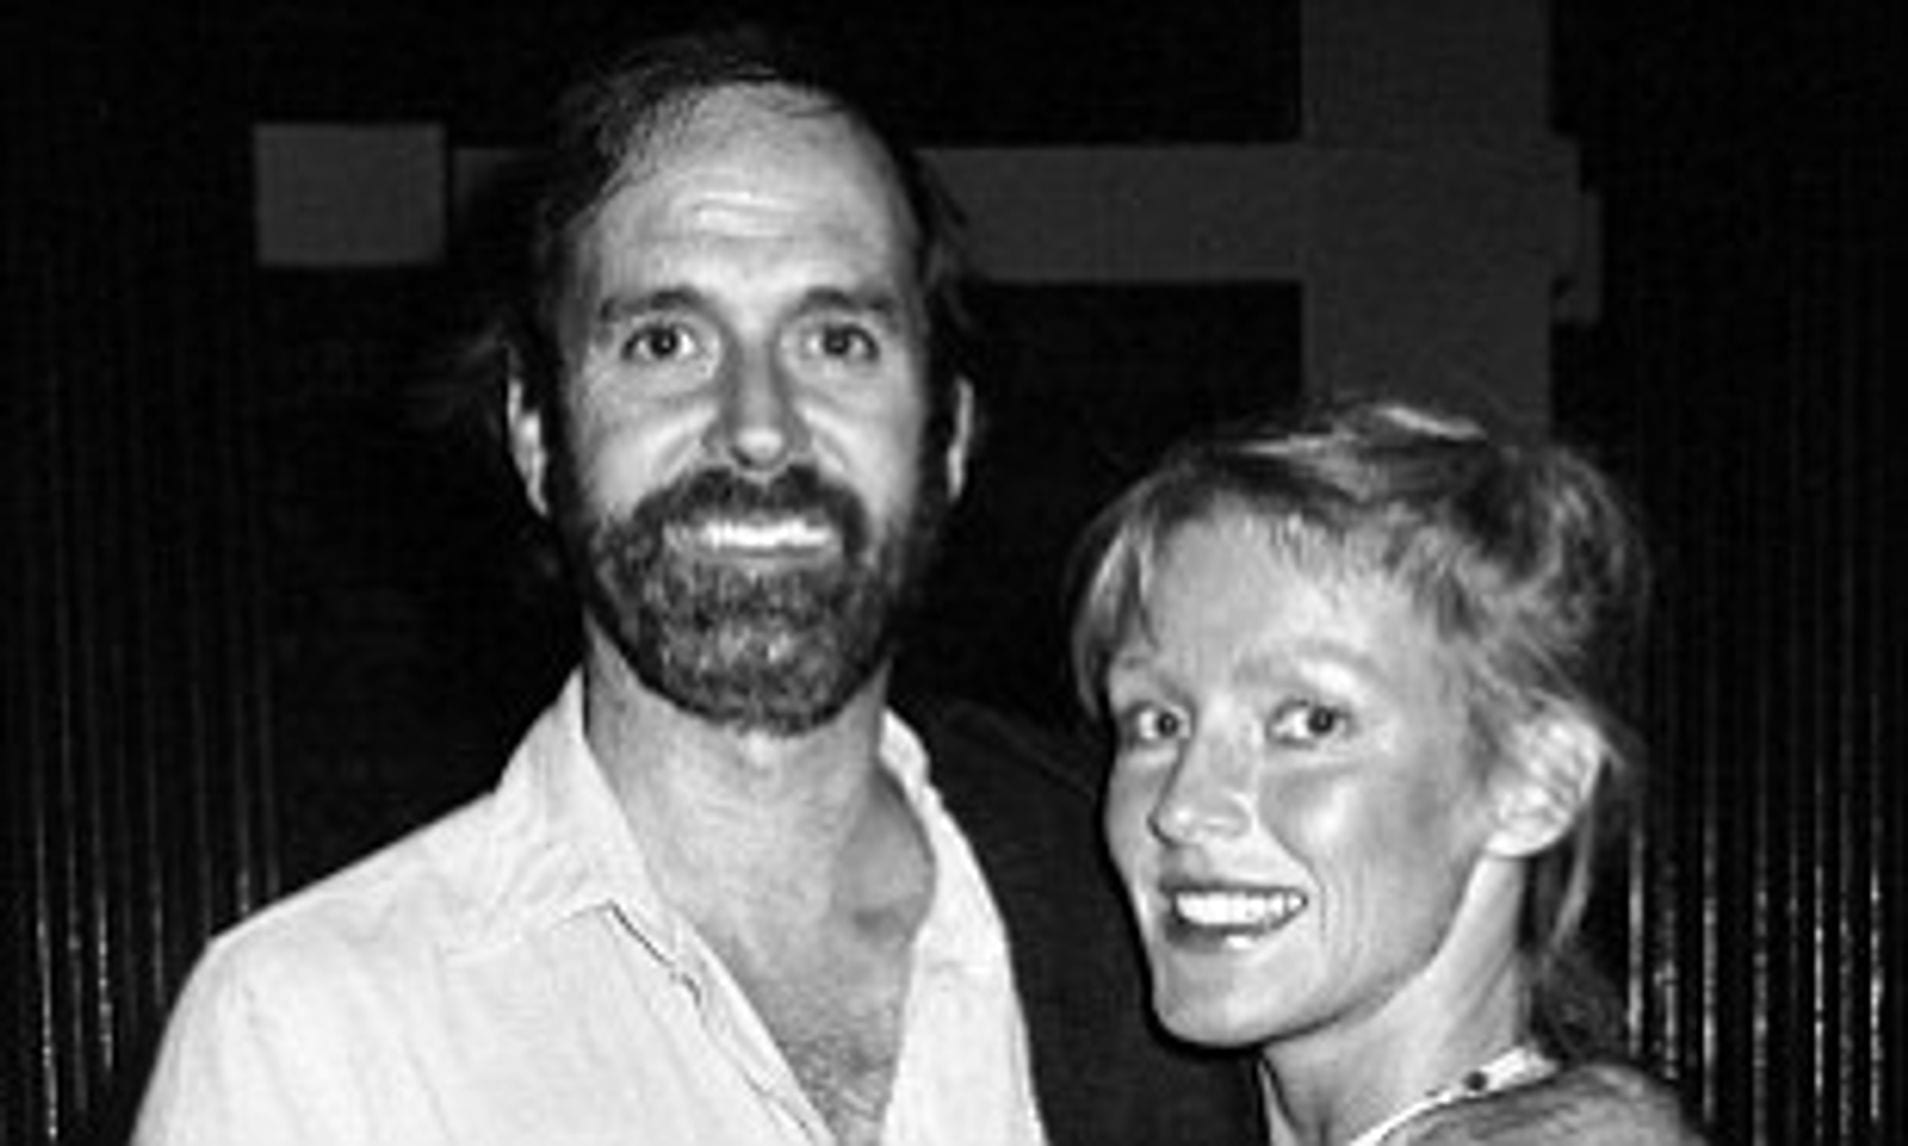 John Cleese Was Married To Barbara Trentham For 10 Years